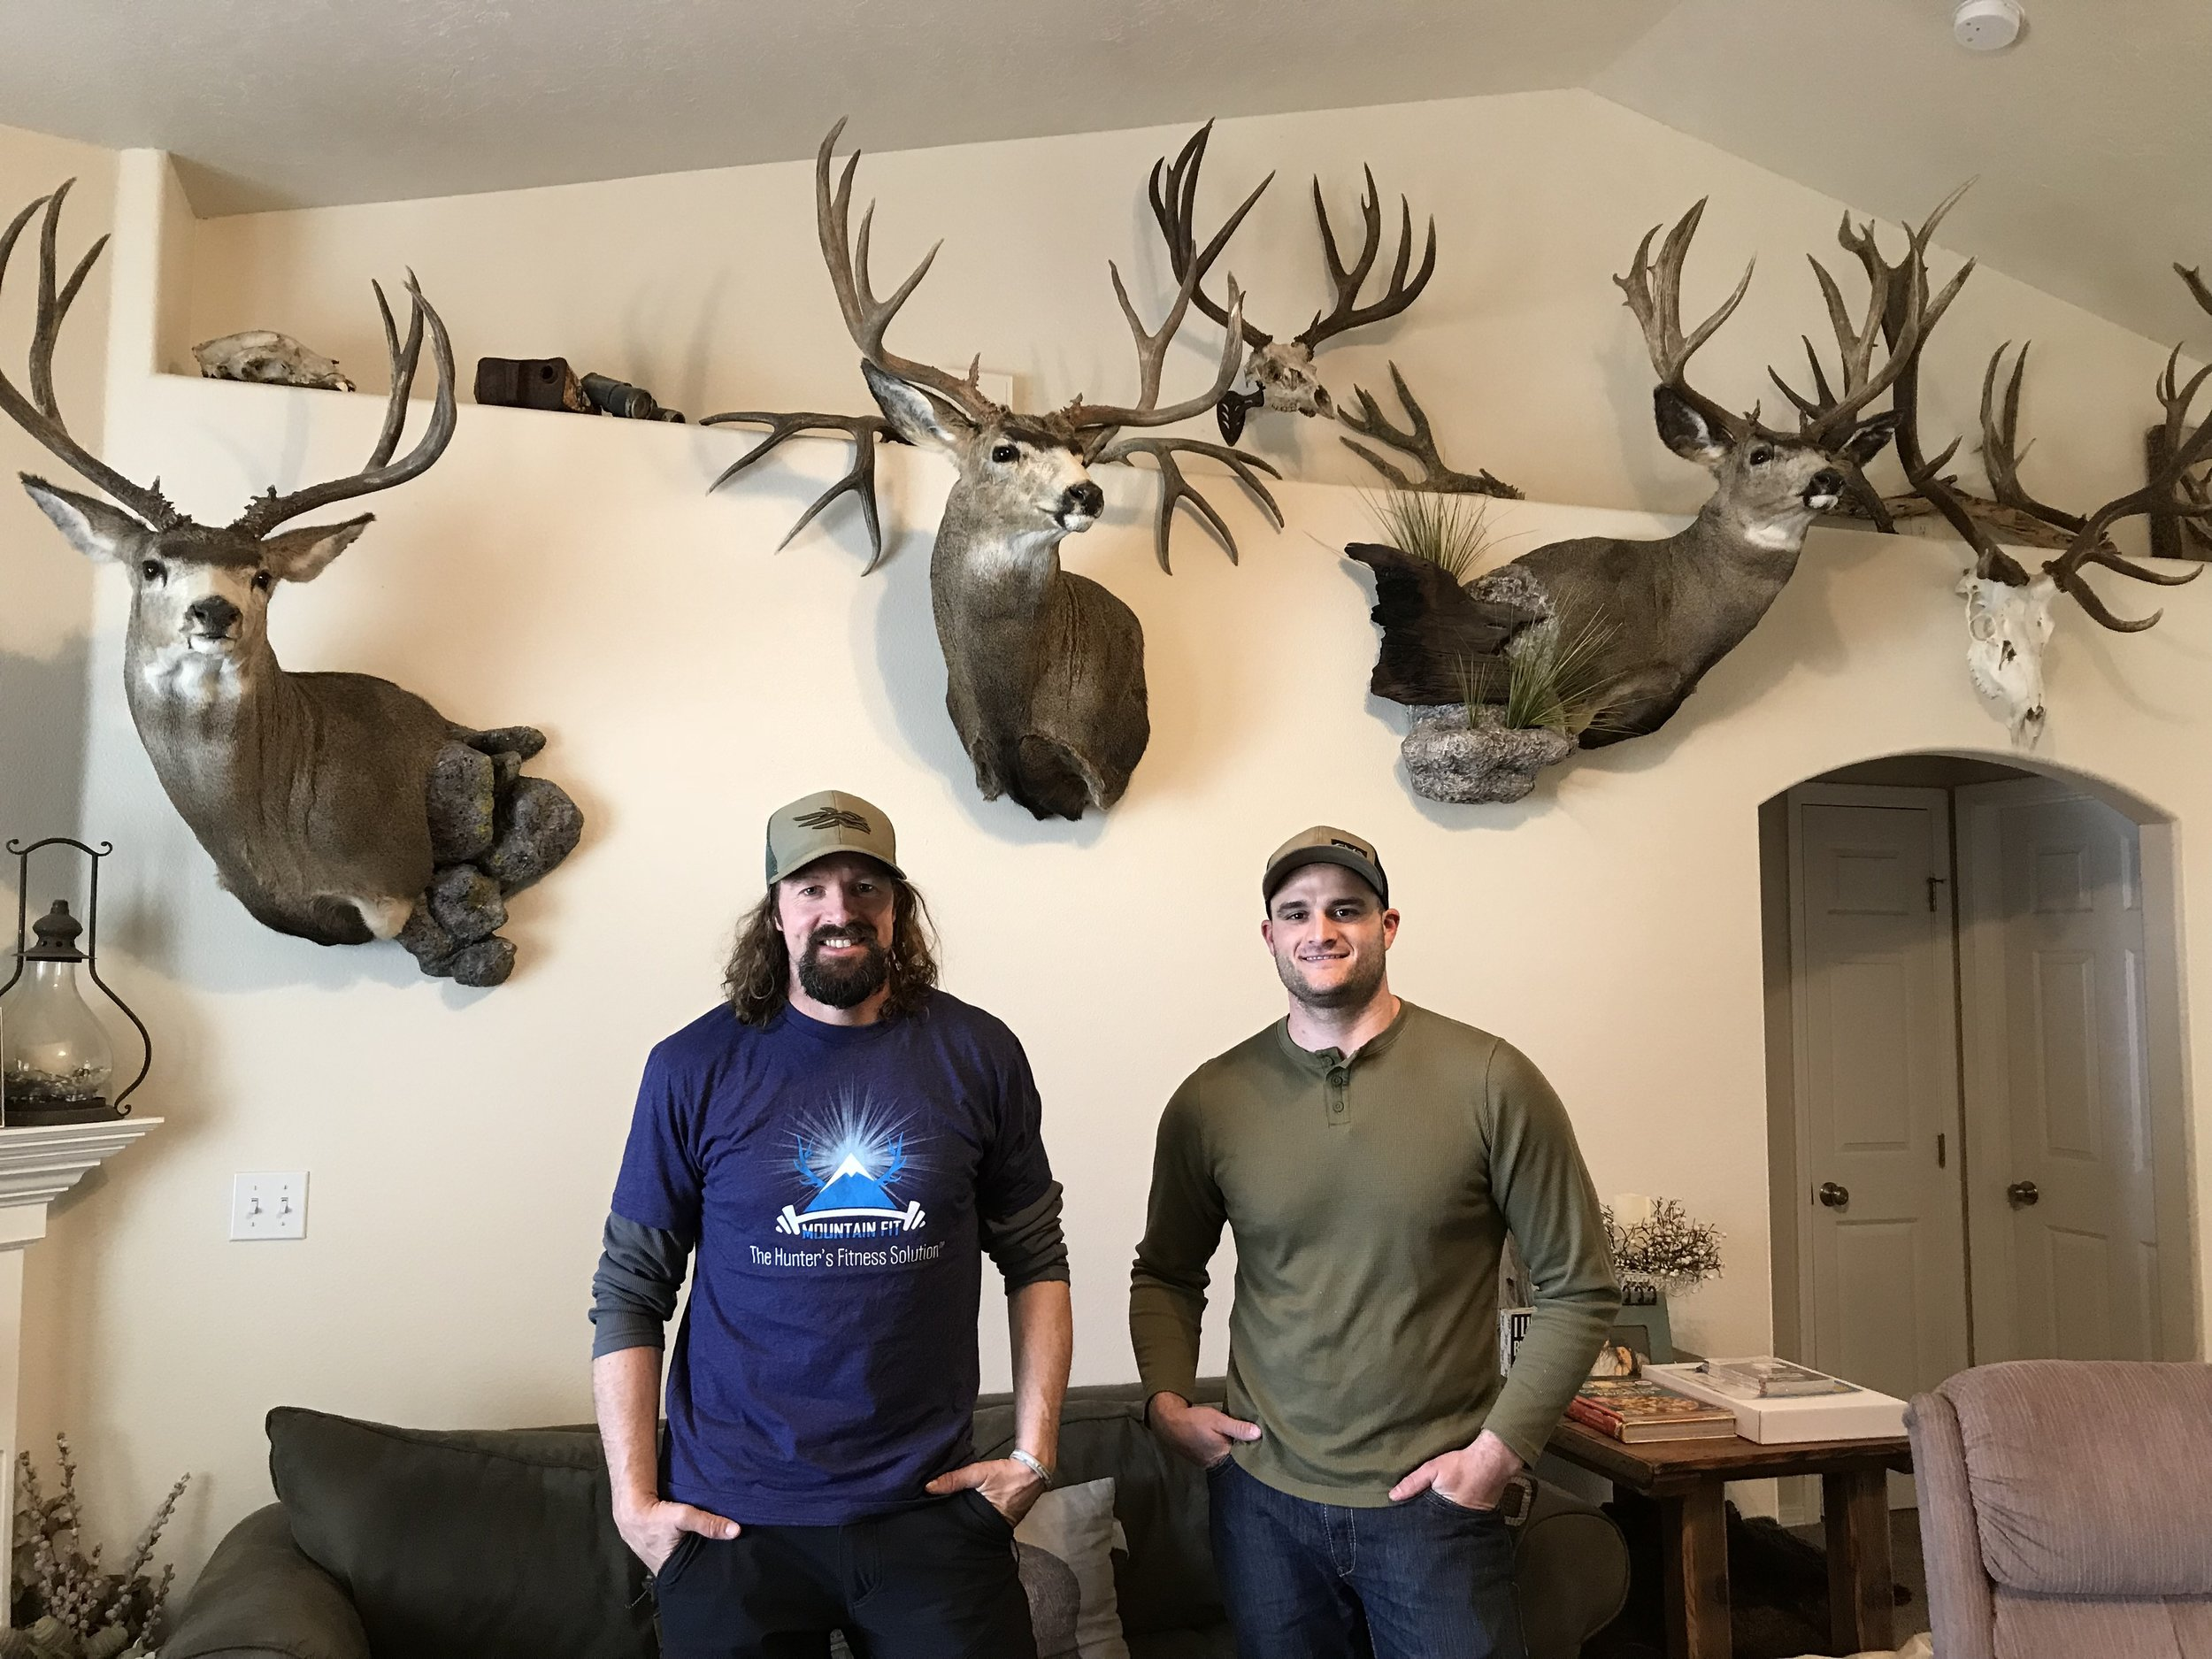 Ryan and Dioni in his home with his favorite mule deer.